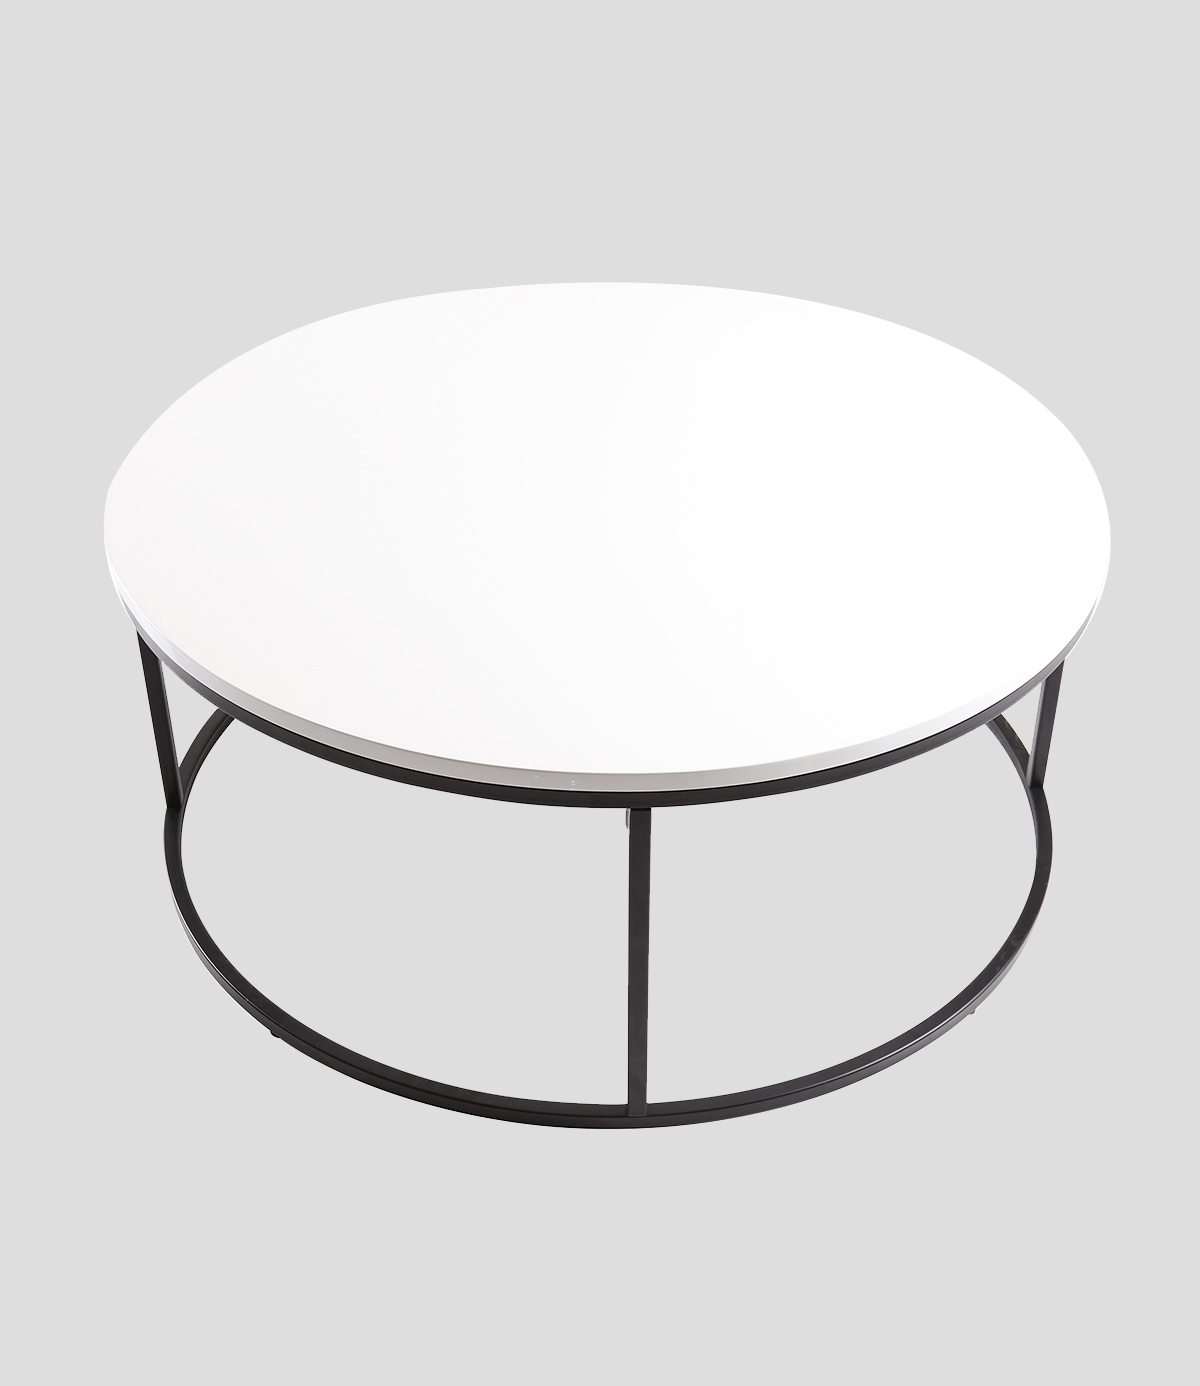 Nest Of 3 High Gloss White Curved Coffee Table Side Tables: Louis Round High Gloss Coffee Table White